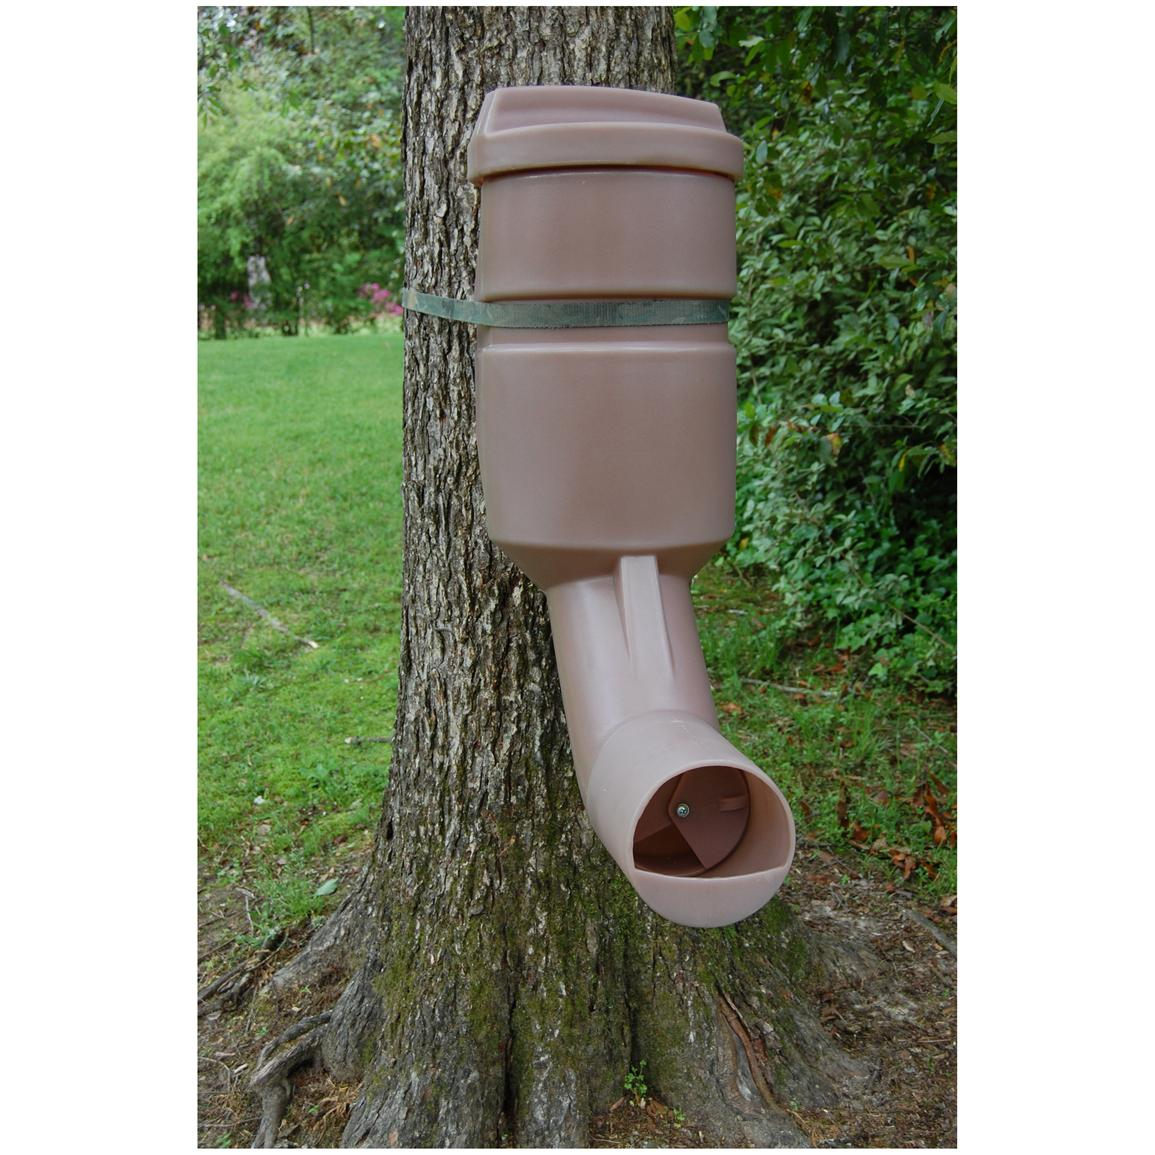 Southern Outdoor Technologies MAX-75 Deer Feeder, Tan